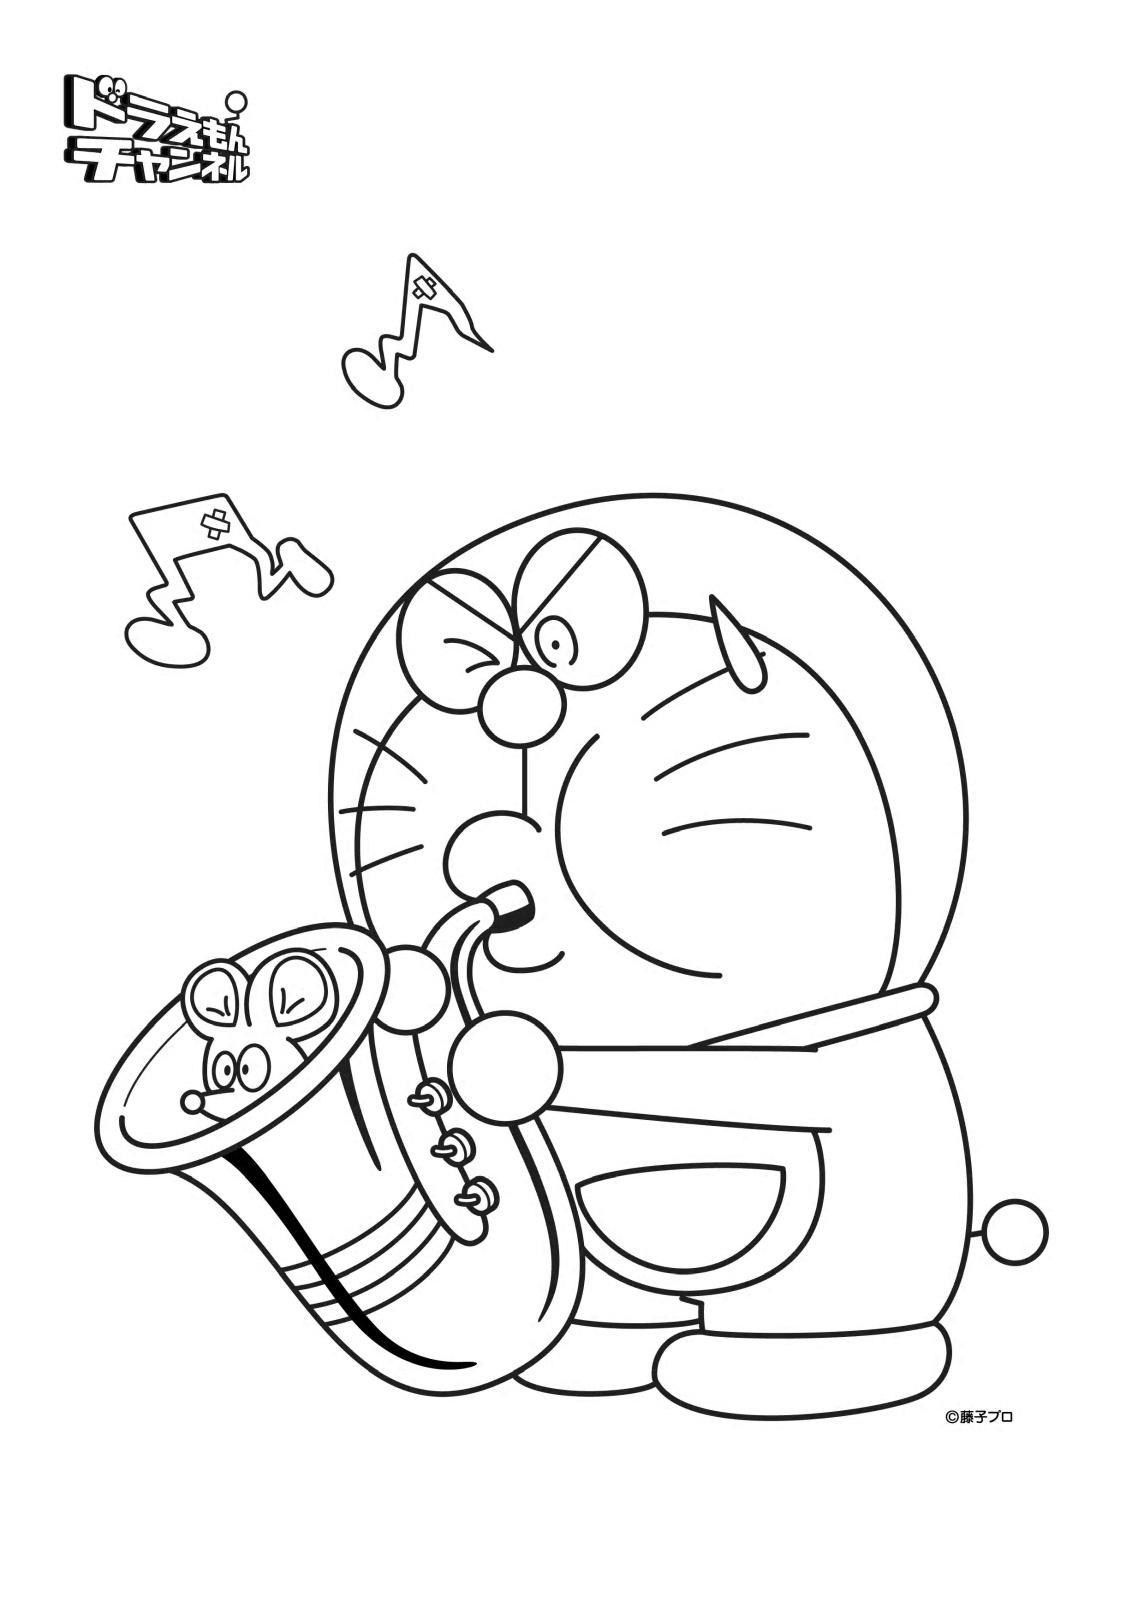 Printable Coloring Pages For Preschoolers - Dessincoloriage ...